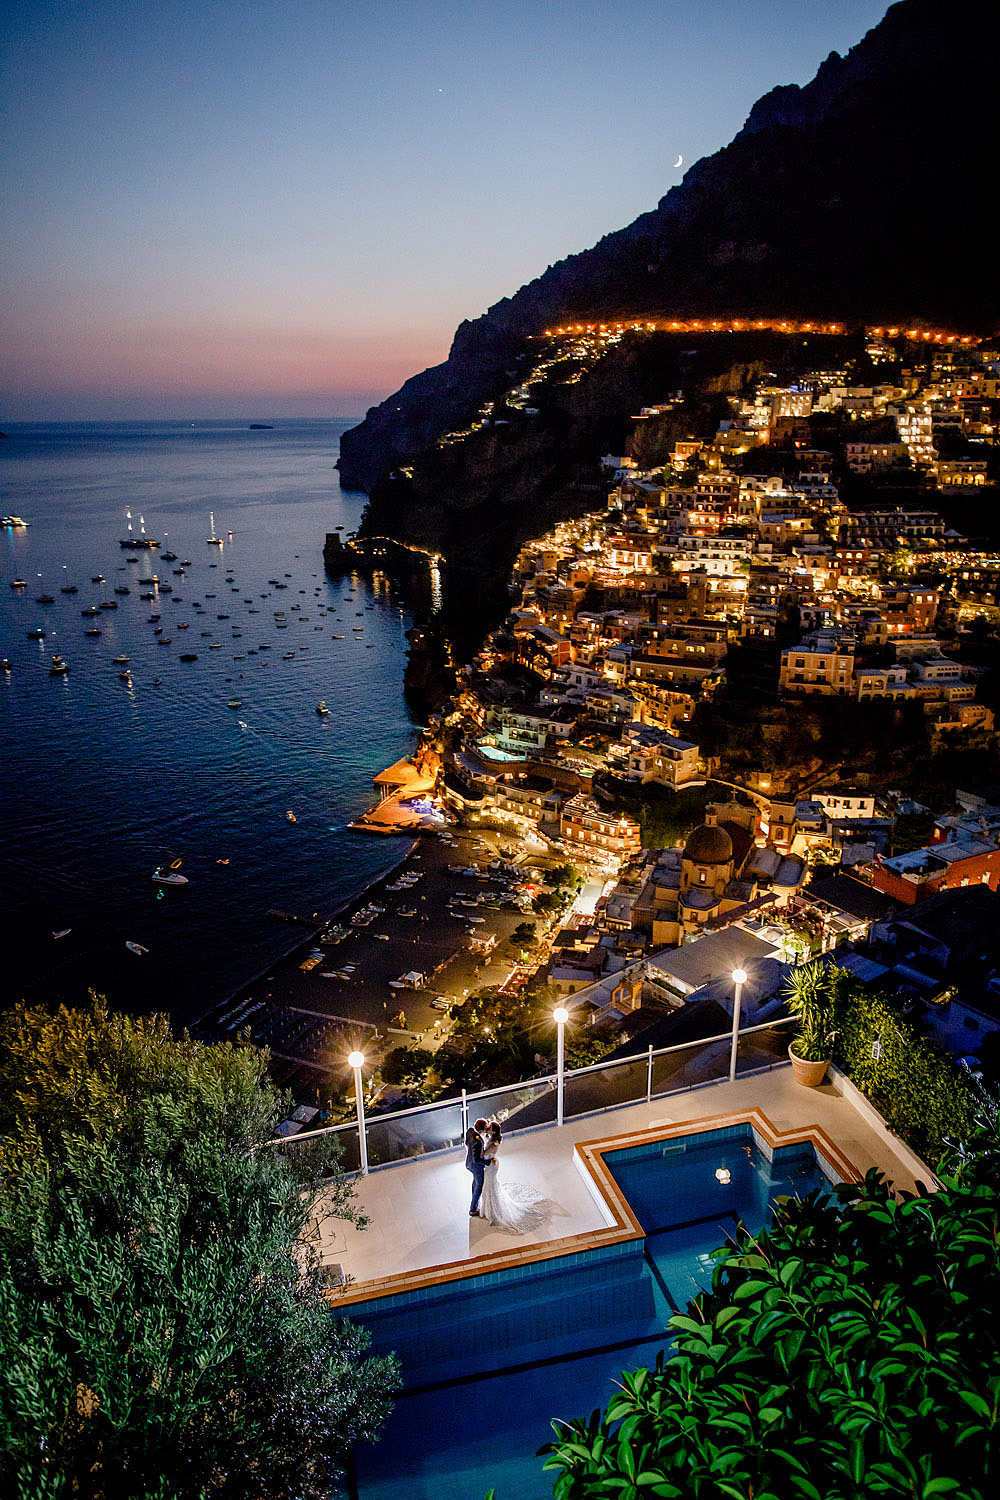 VILLA OLIVIERO WEDDING IN AN ENCHANTED LOCATION POSITANO :: Luxury wedding photography - 37